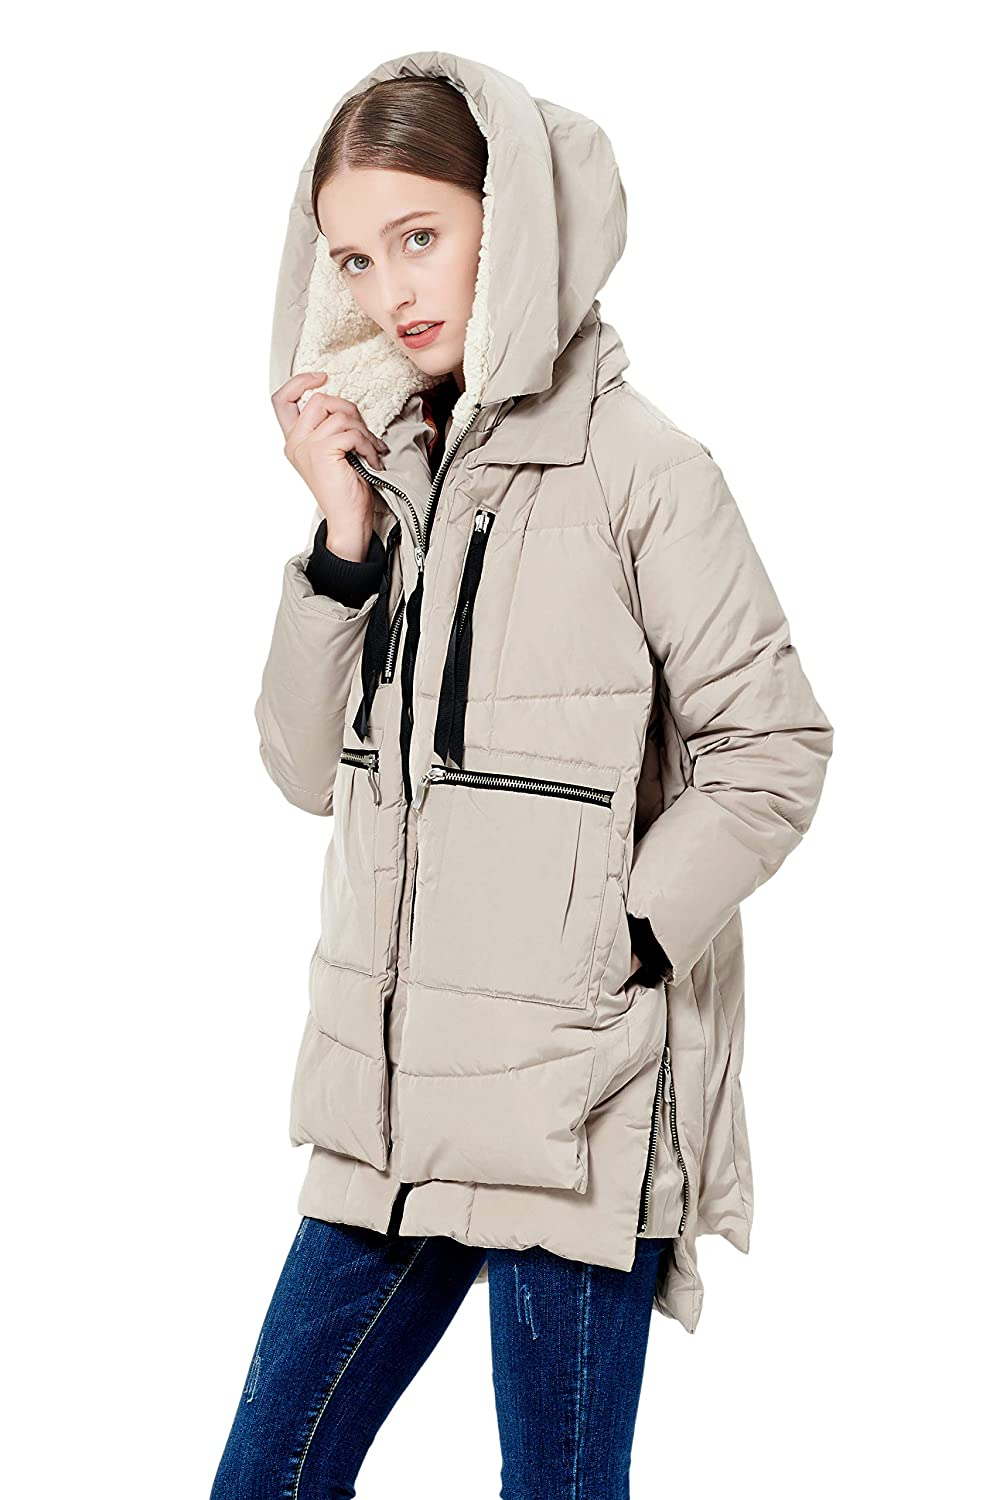 61b62a3e1480 Amazon.com  Orolay Women s Thickened Down Jacket (Most Wished  Gift ...